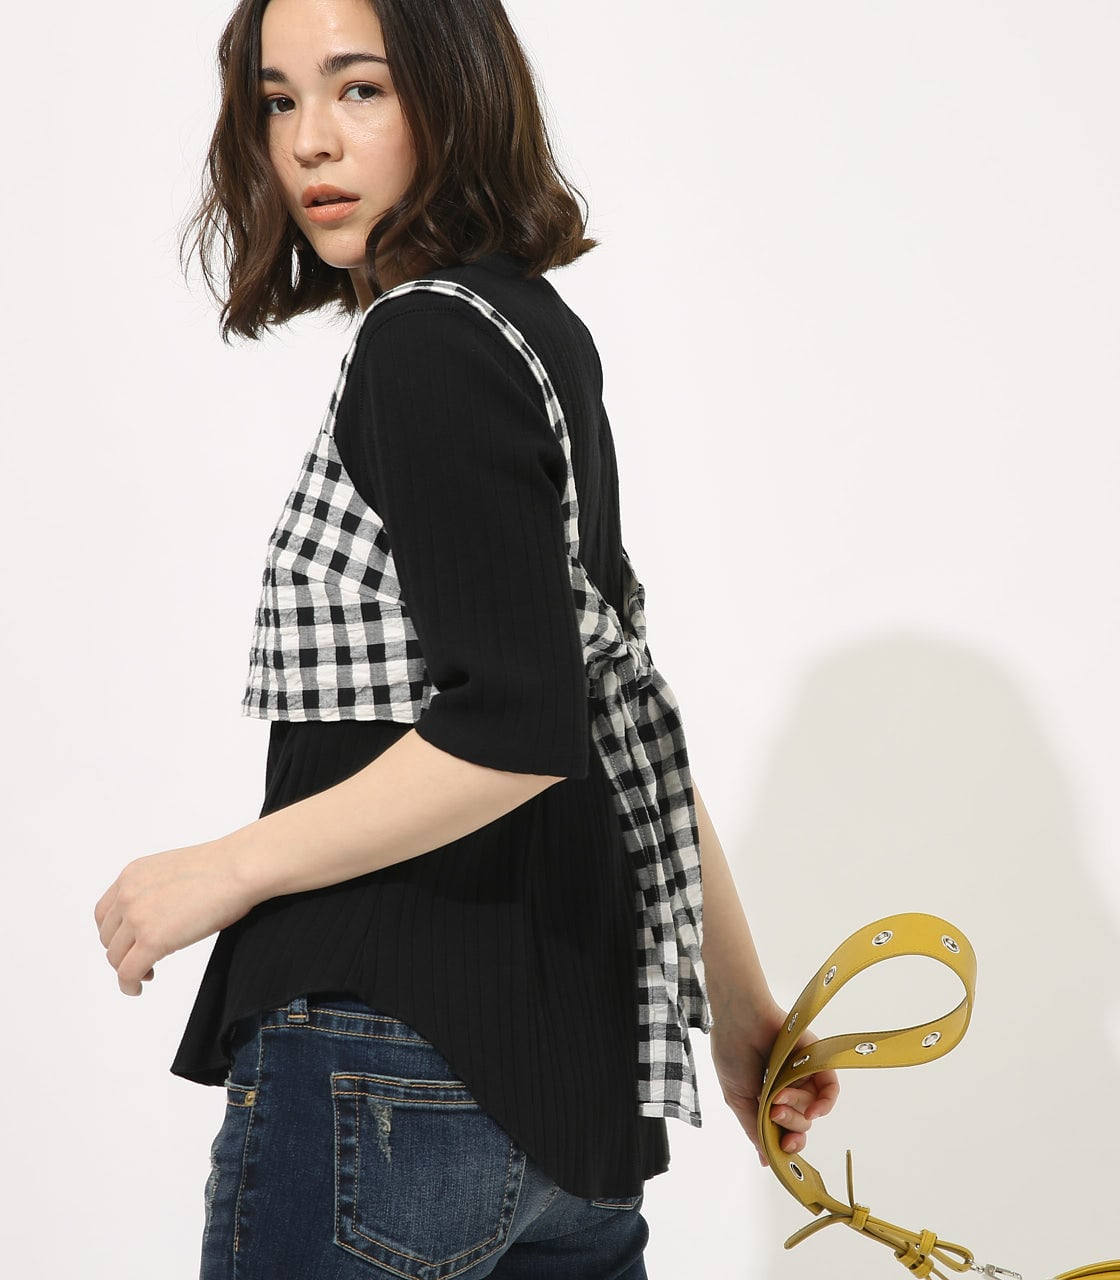 【AZUL BY MOUSSY】GINGHAM CHECK BUSTIER TOPS 【MOOK49掲載 90054】 詳細画像 柄BLK 2